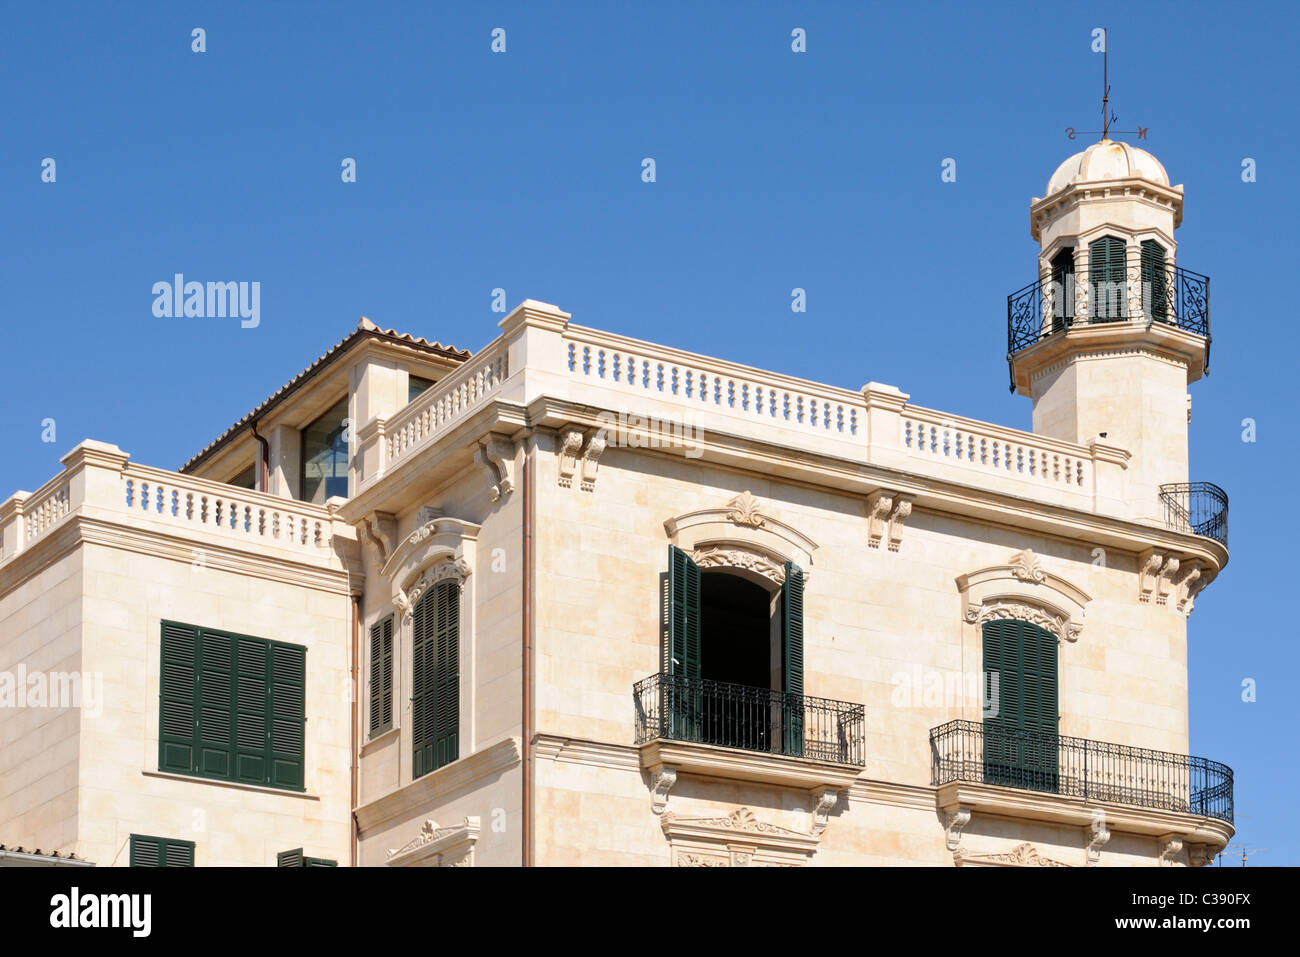 Schönes Gebäude in Santa Catalina, Palma, Mallorca, Spanien. - Beautiful buildung in Santa Catalina, Palma, - Stock Image